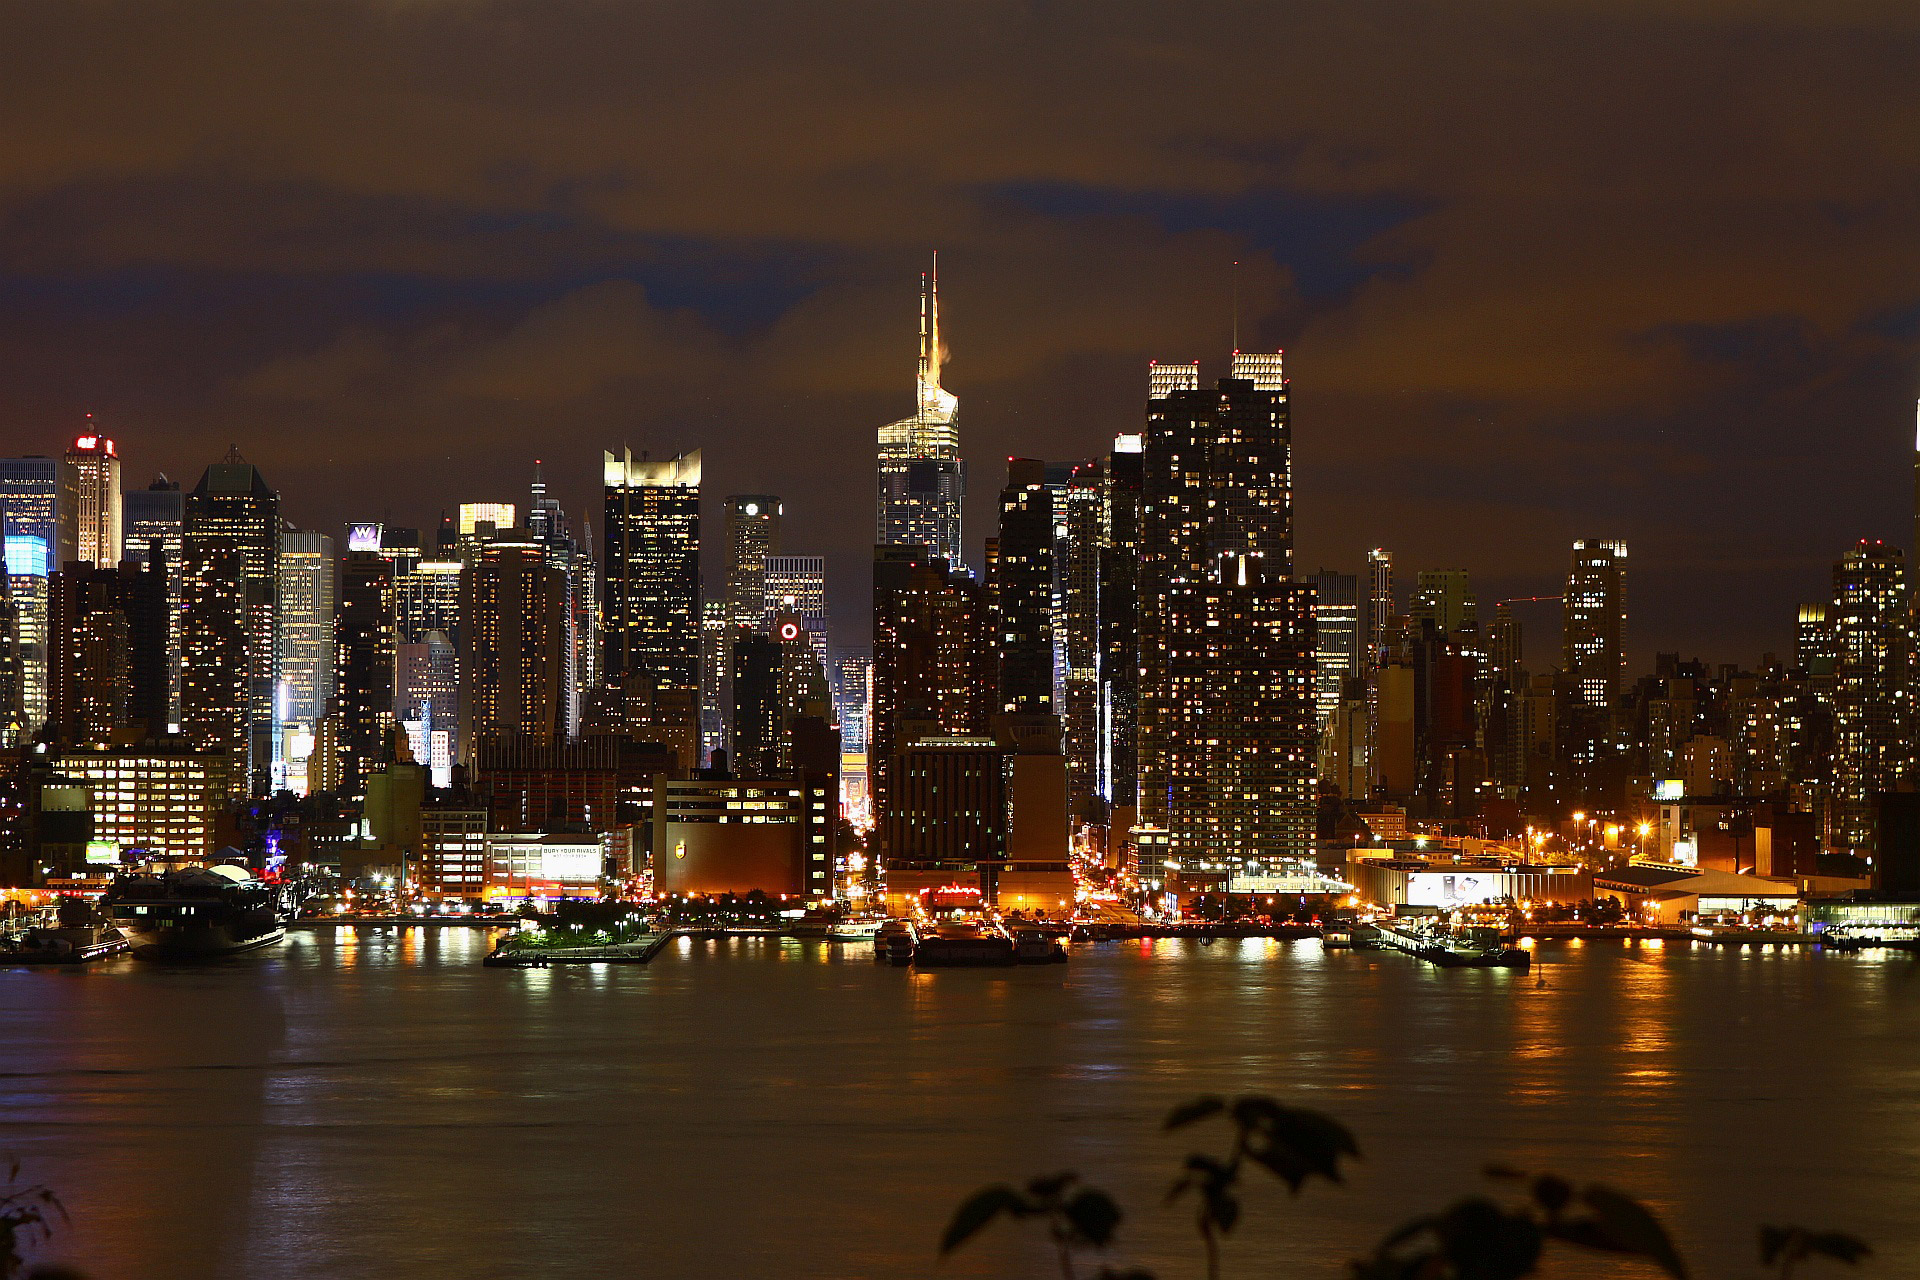 New York, City Lights, Night Reflections